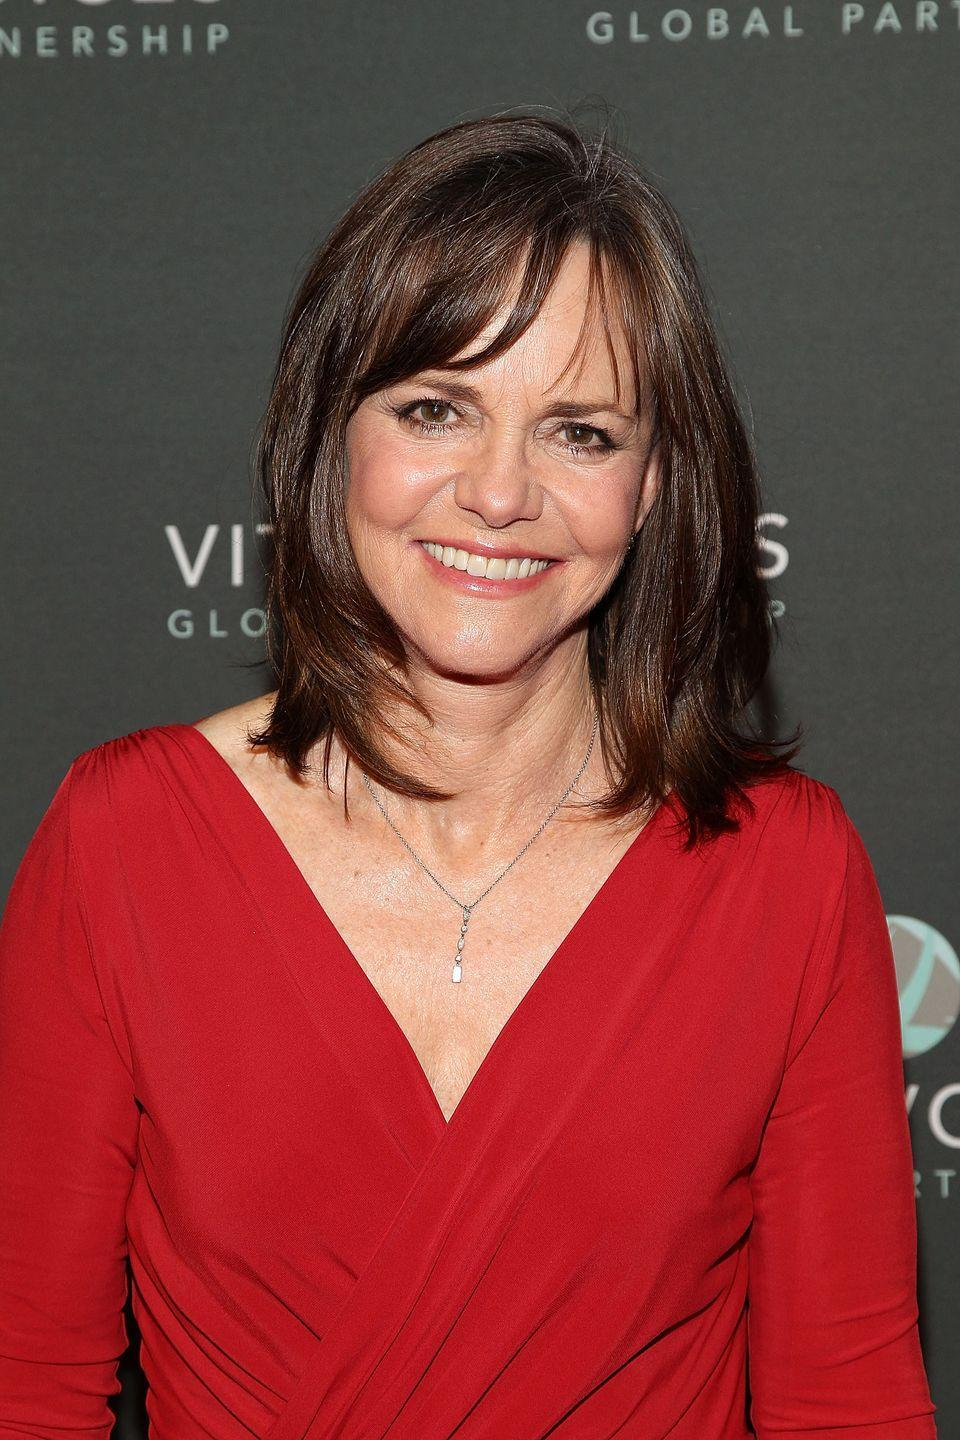 "<p>Field was not a fan of the <em>Spiderman </em>sequel. Field <a href=""http://www.vulture.com/2016/03/sally-field-spider-man.html"" rel=""nofollow noopener"" target=""_blank"" data-ylk=""slk:told Howard Stern"" class=""link rapid-noclick-resp"">told Howard Stern</a>, ""It's really hard to find a three-dimensional character in it, and you work it as much as you can, but you can't put ten pounds of sh*t in a five-pound bag.""</p>"